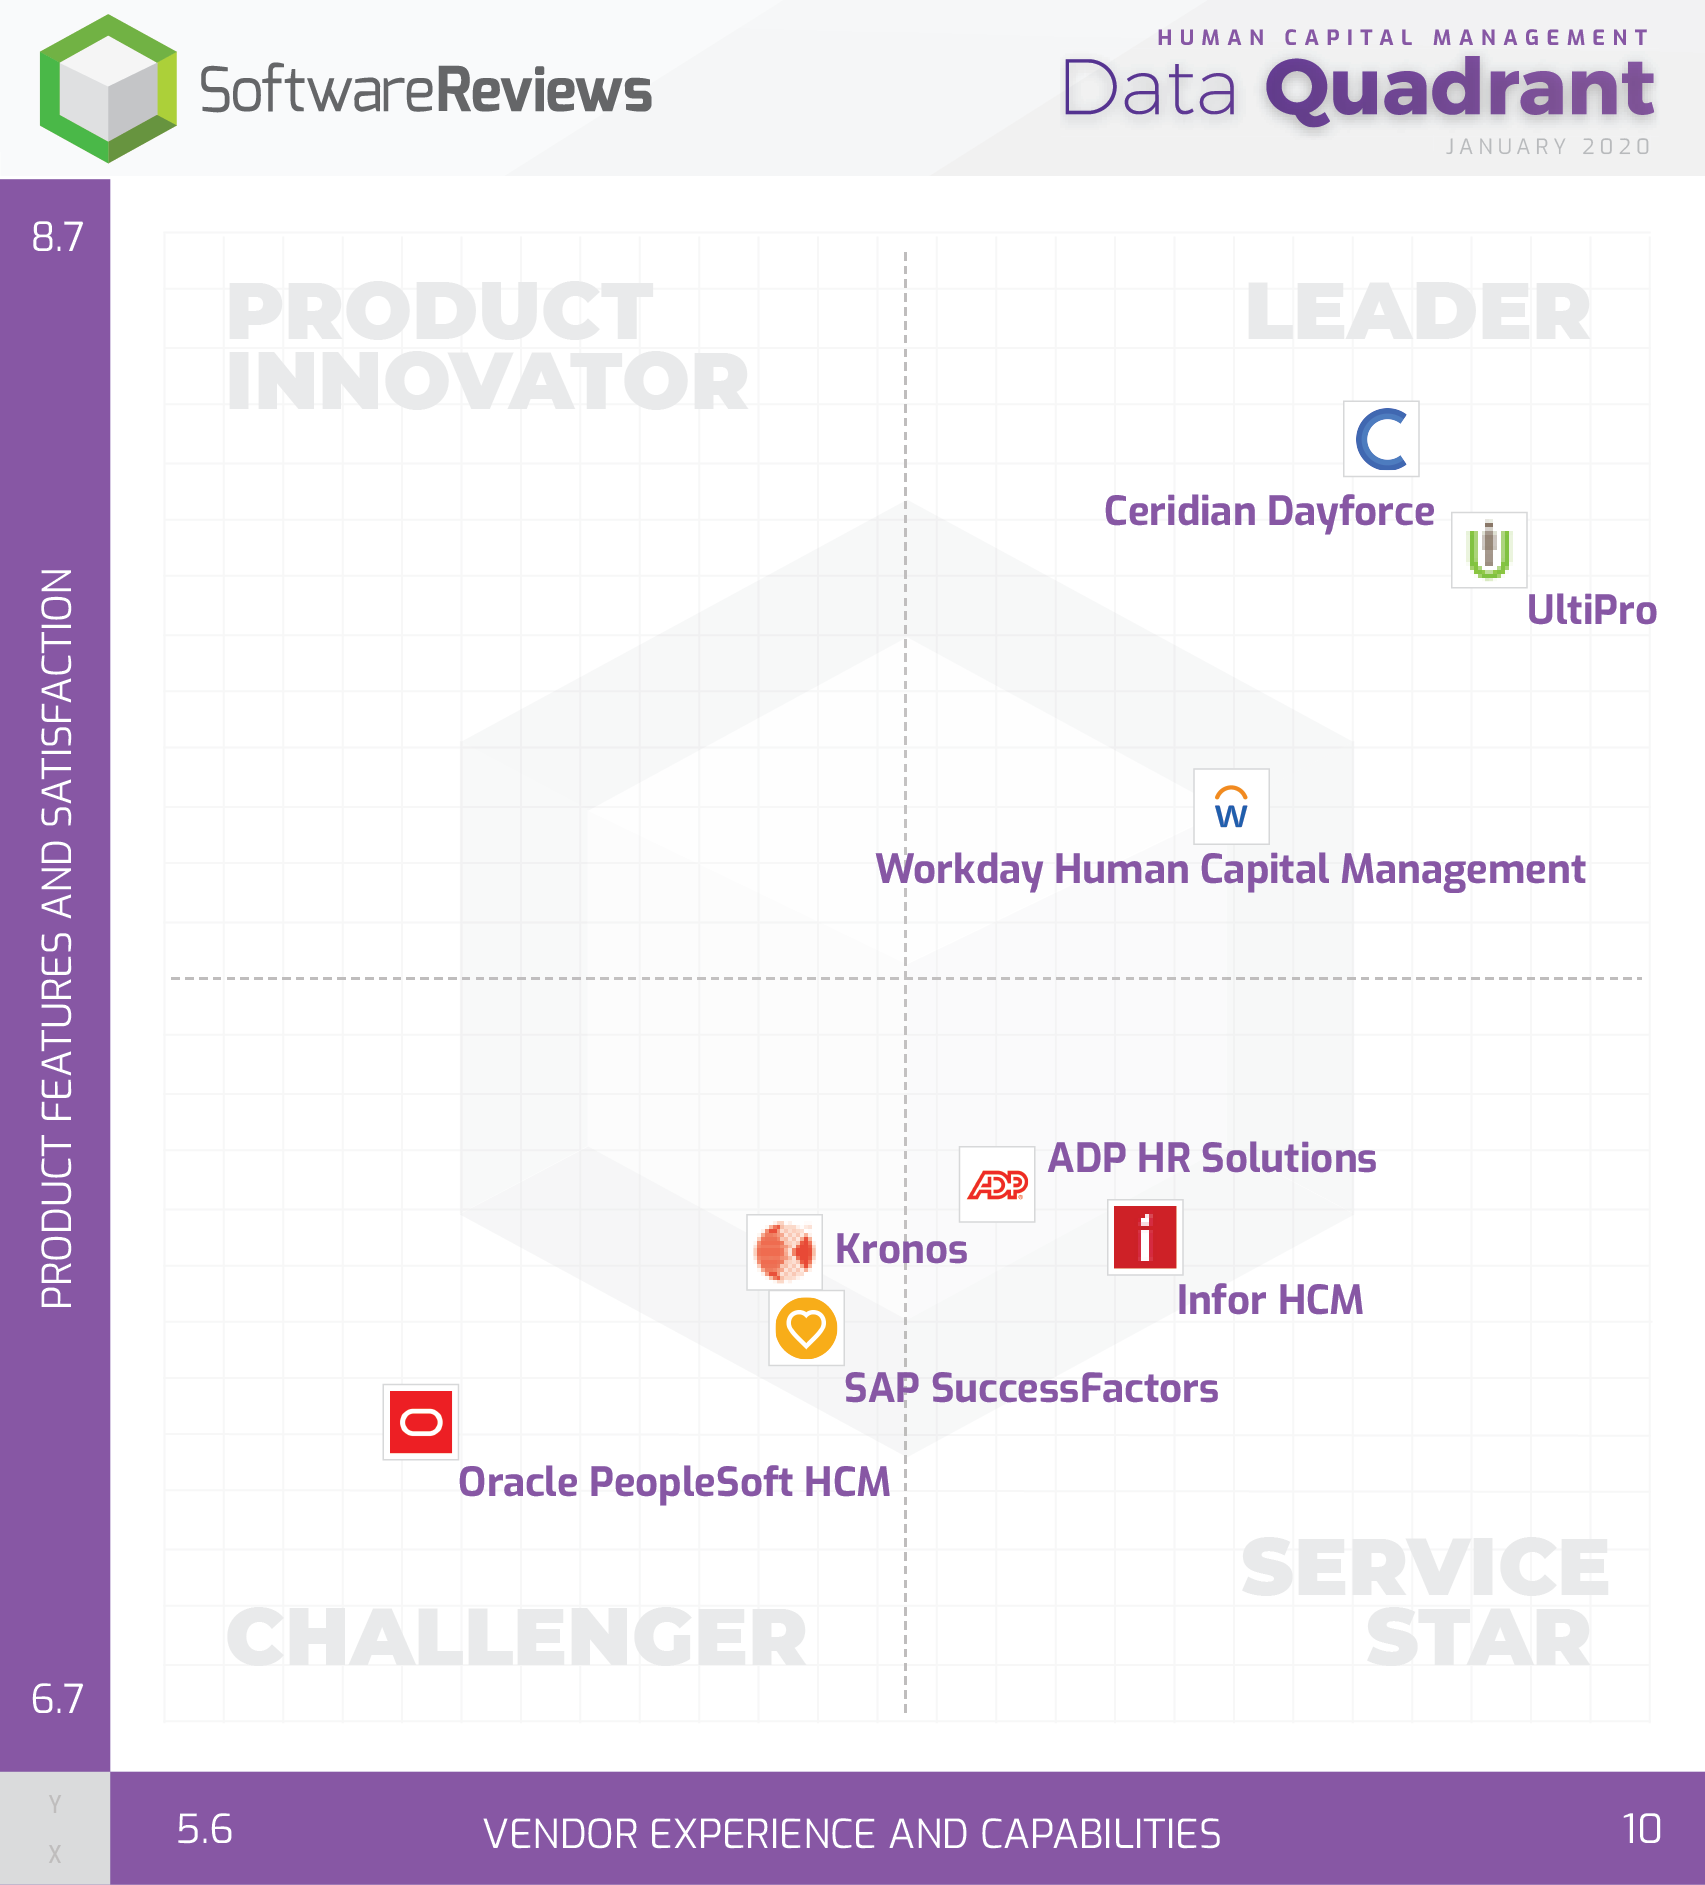 Human Capital Management Data Quadrant